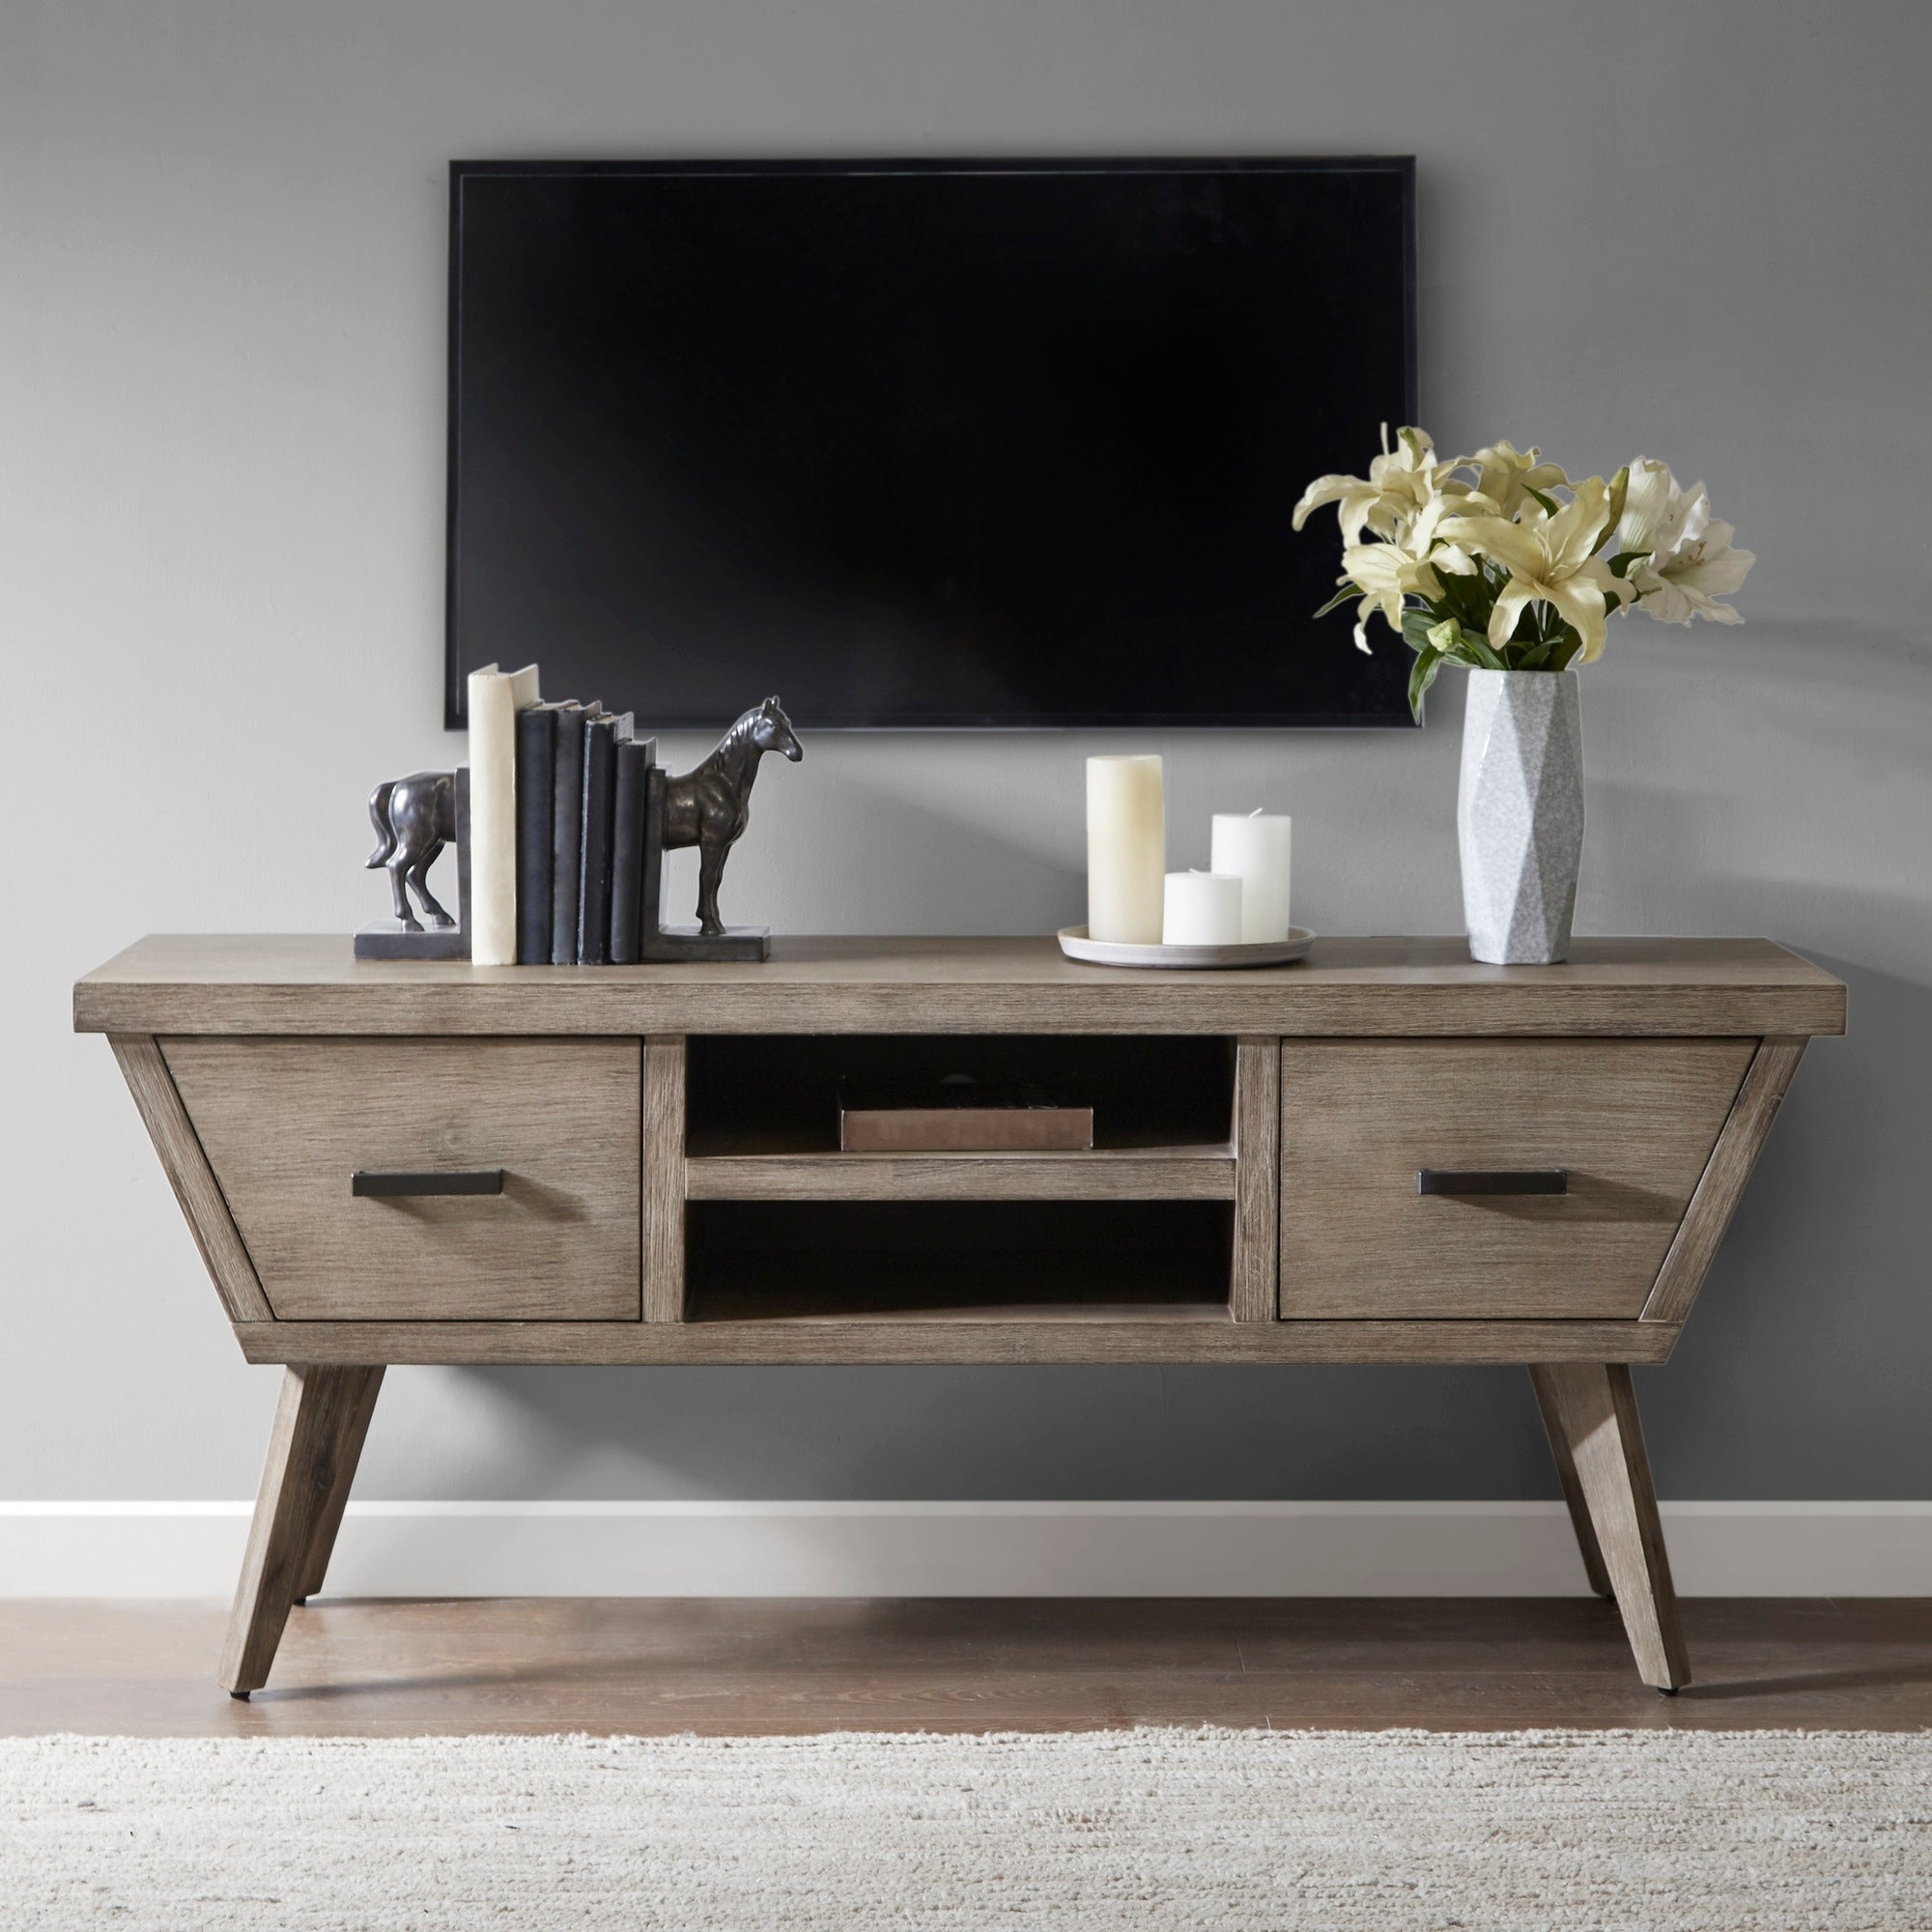 Buy Acacia Buffets, Sideboards & China Cabinets Online At With Rustic Walnut Buffets (View 15 of 20)